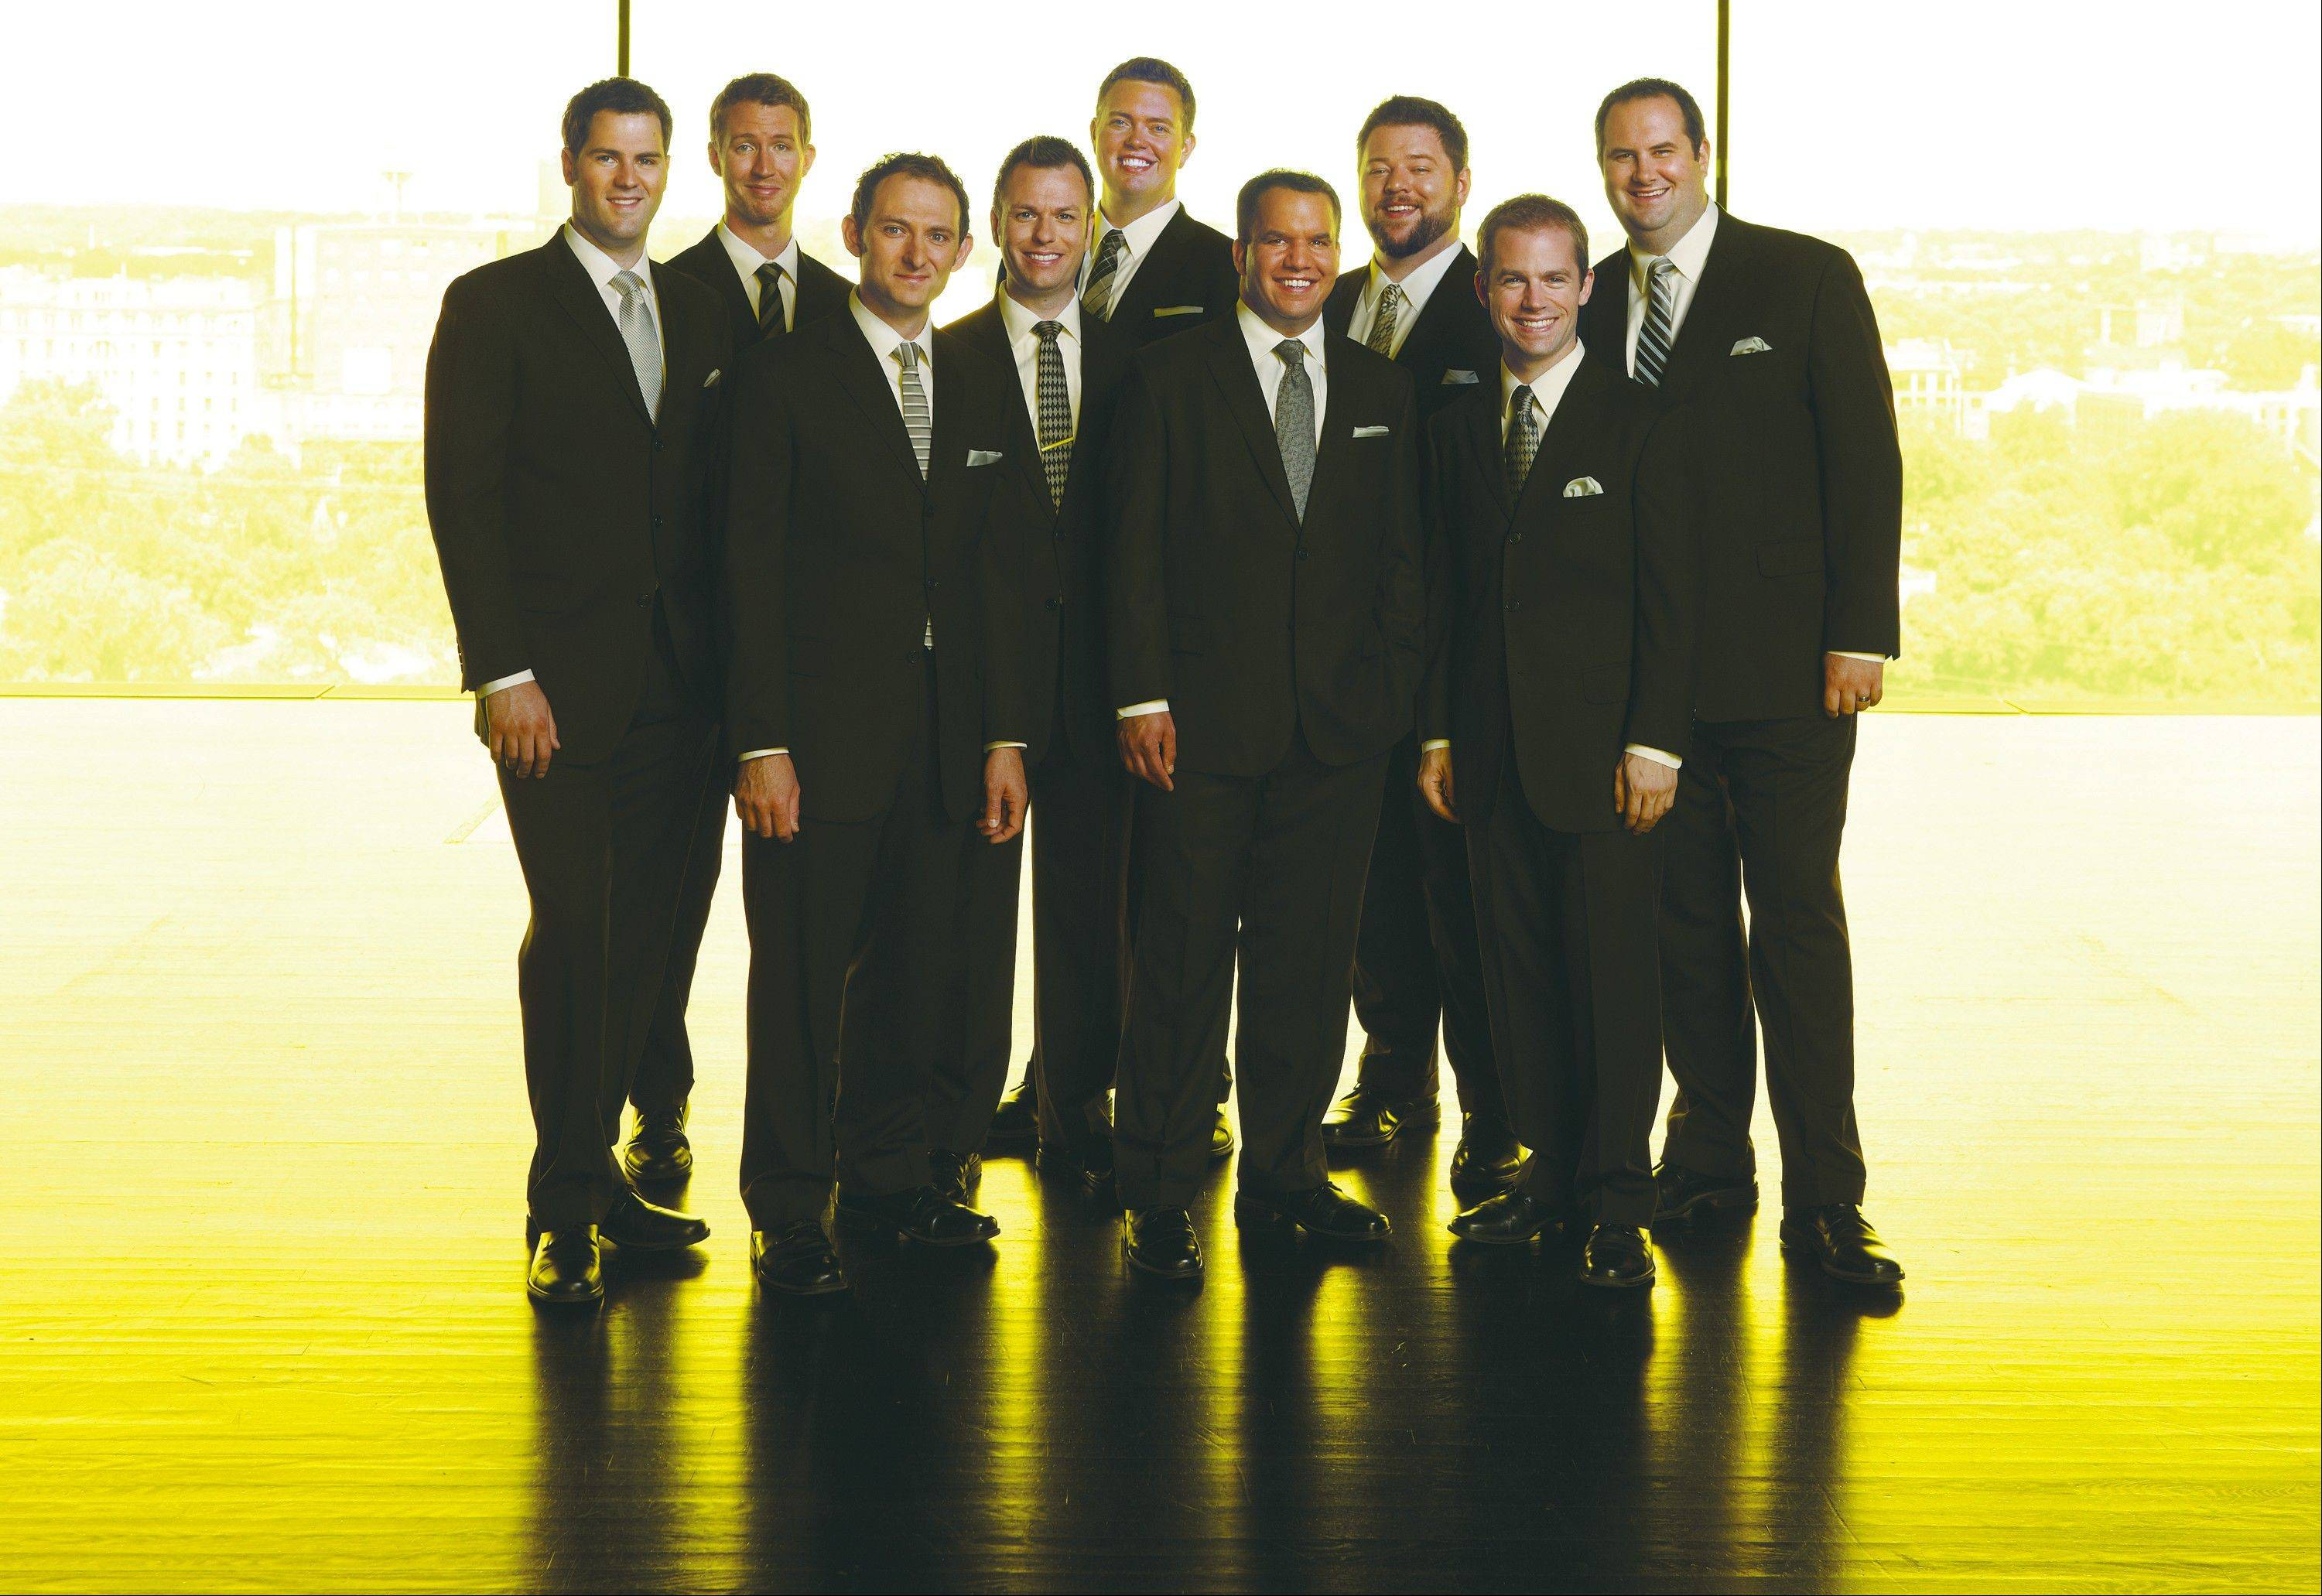 The nine-member male vocal ensemble Cantus performs in Grayslake at College of Lake County's Lumber Center for the Performing Arts on Sunday, Jan. 26.